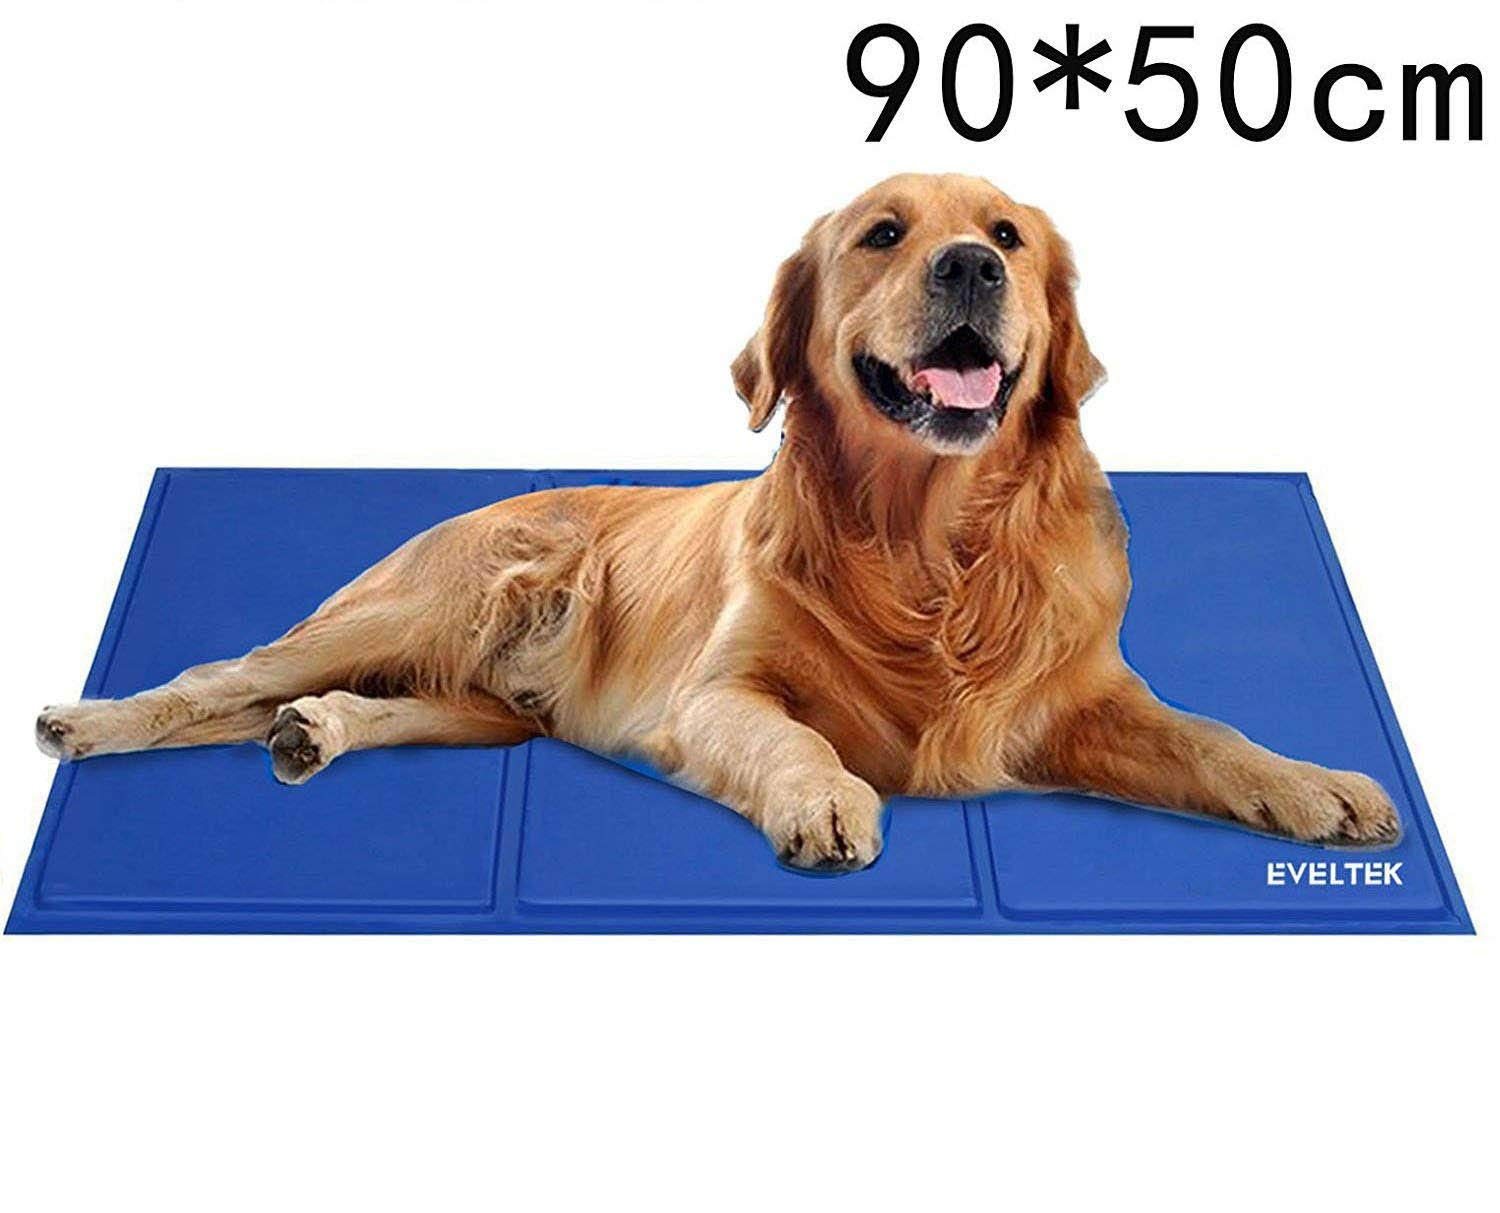 EVELTEK pet cool seat cool mat versatile dogs and cats for the car for notebook PC cooling gel sheet Hiehie refreshing cooling mat coolness sensation mat softgel bluee size 90  50cm medium and for large dogs